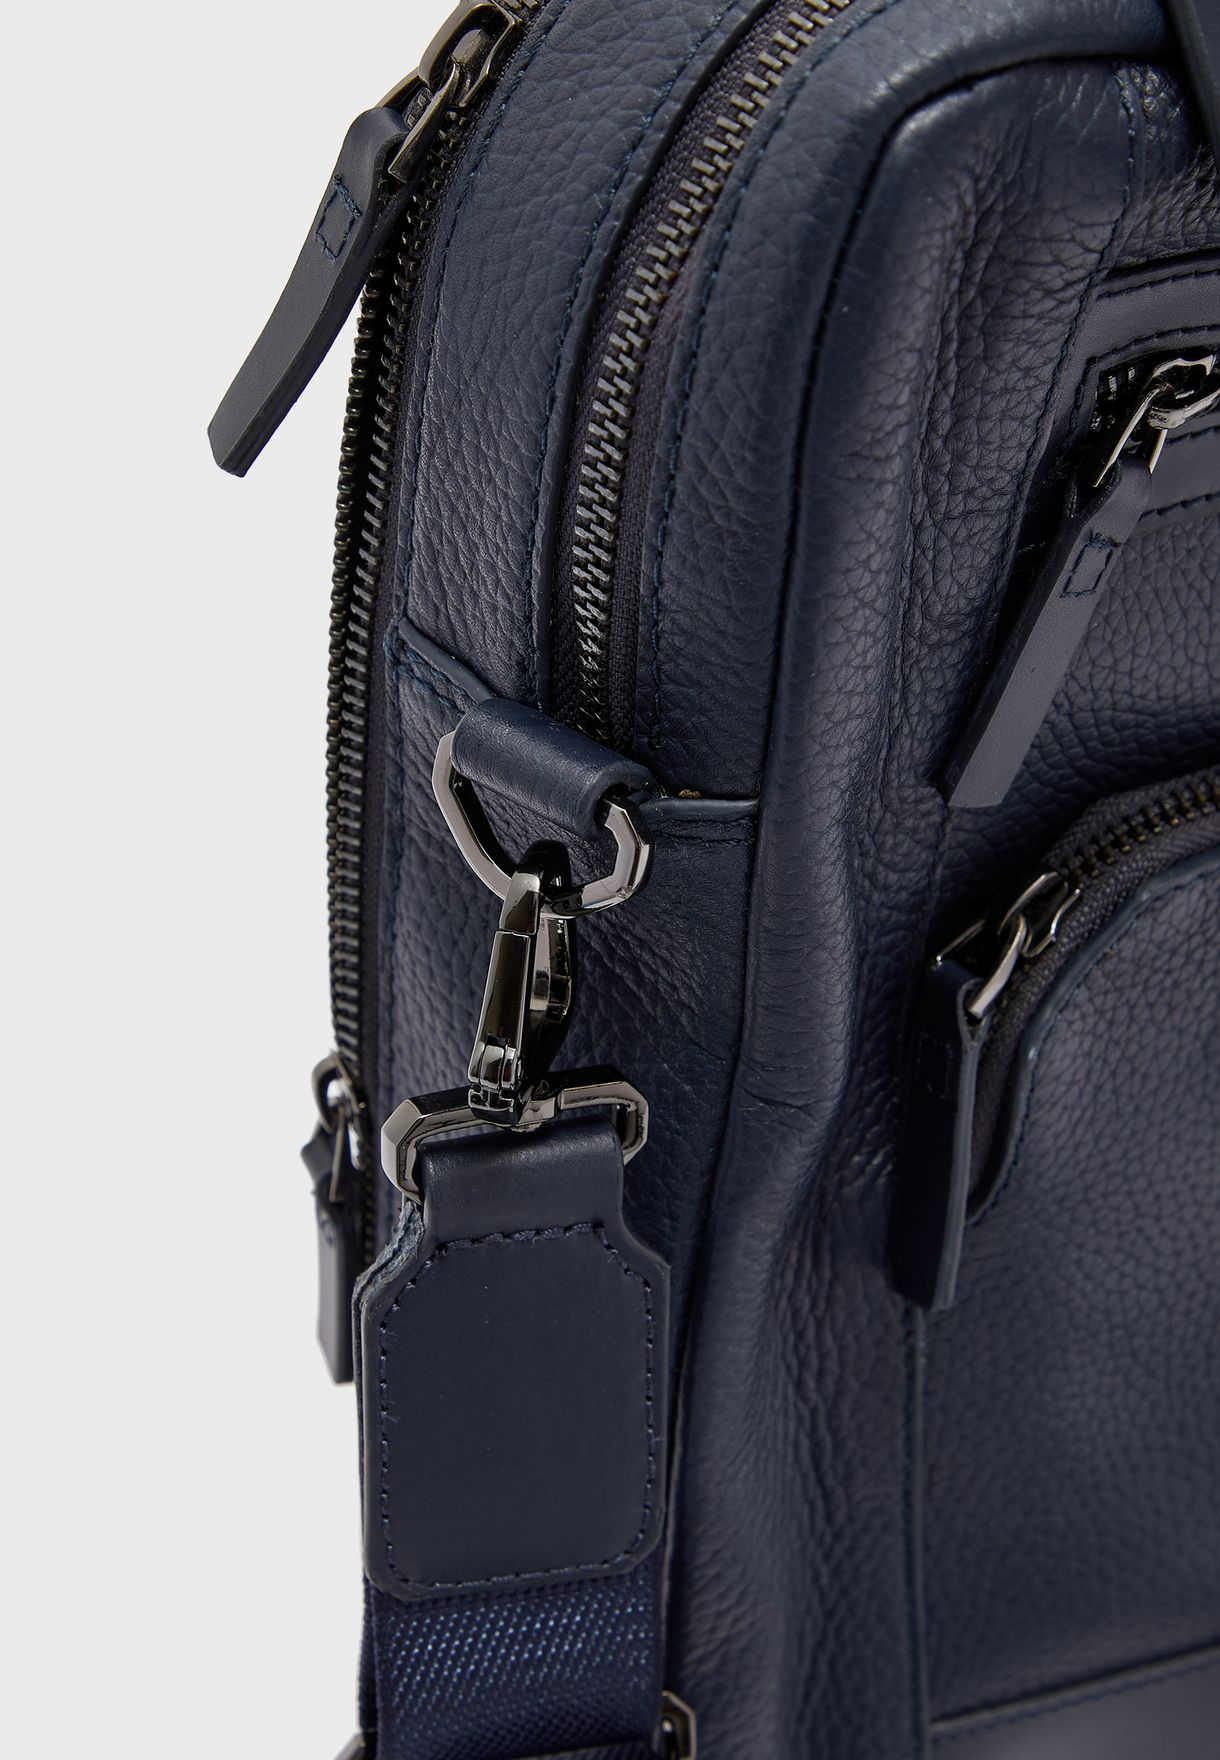 Avior Messenger Bag